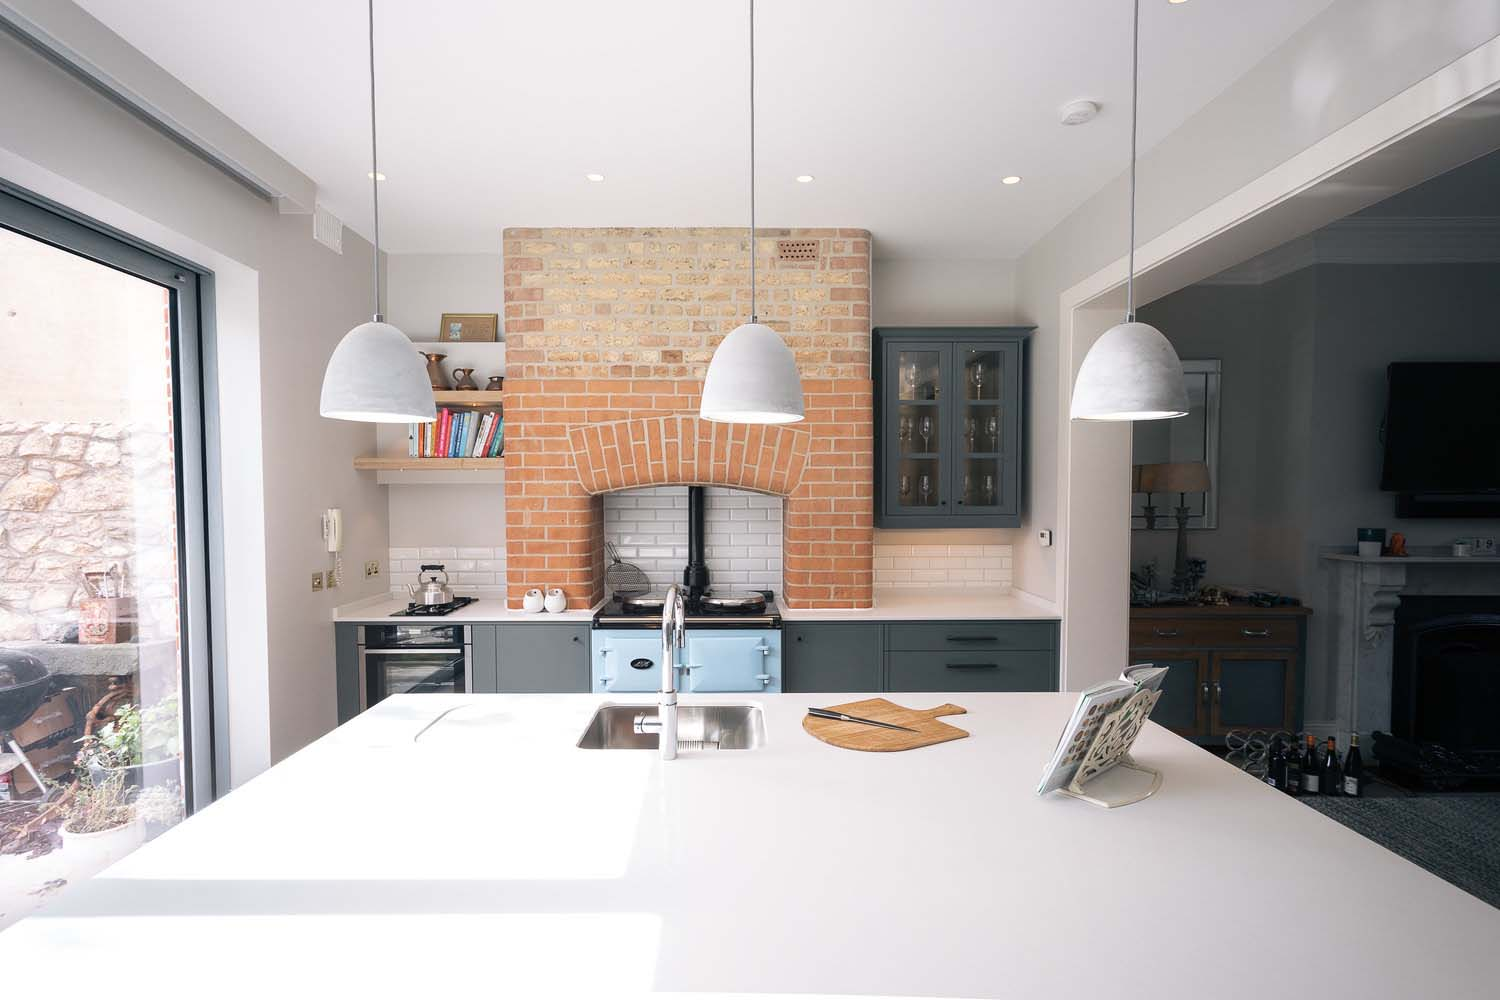 brick kitchen chimney with exposed oven pipes